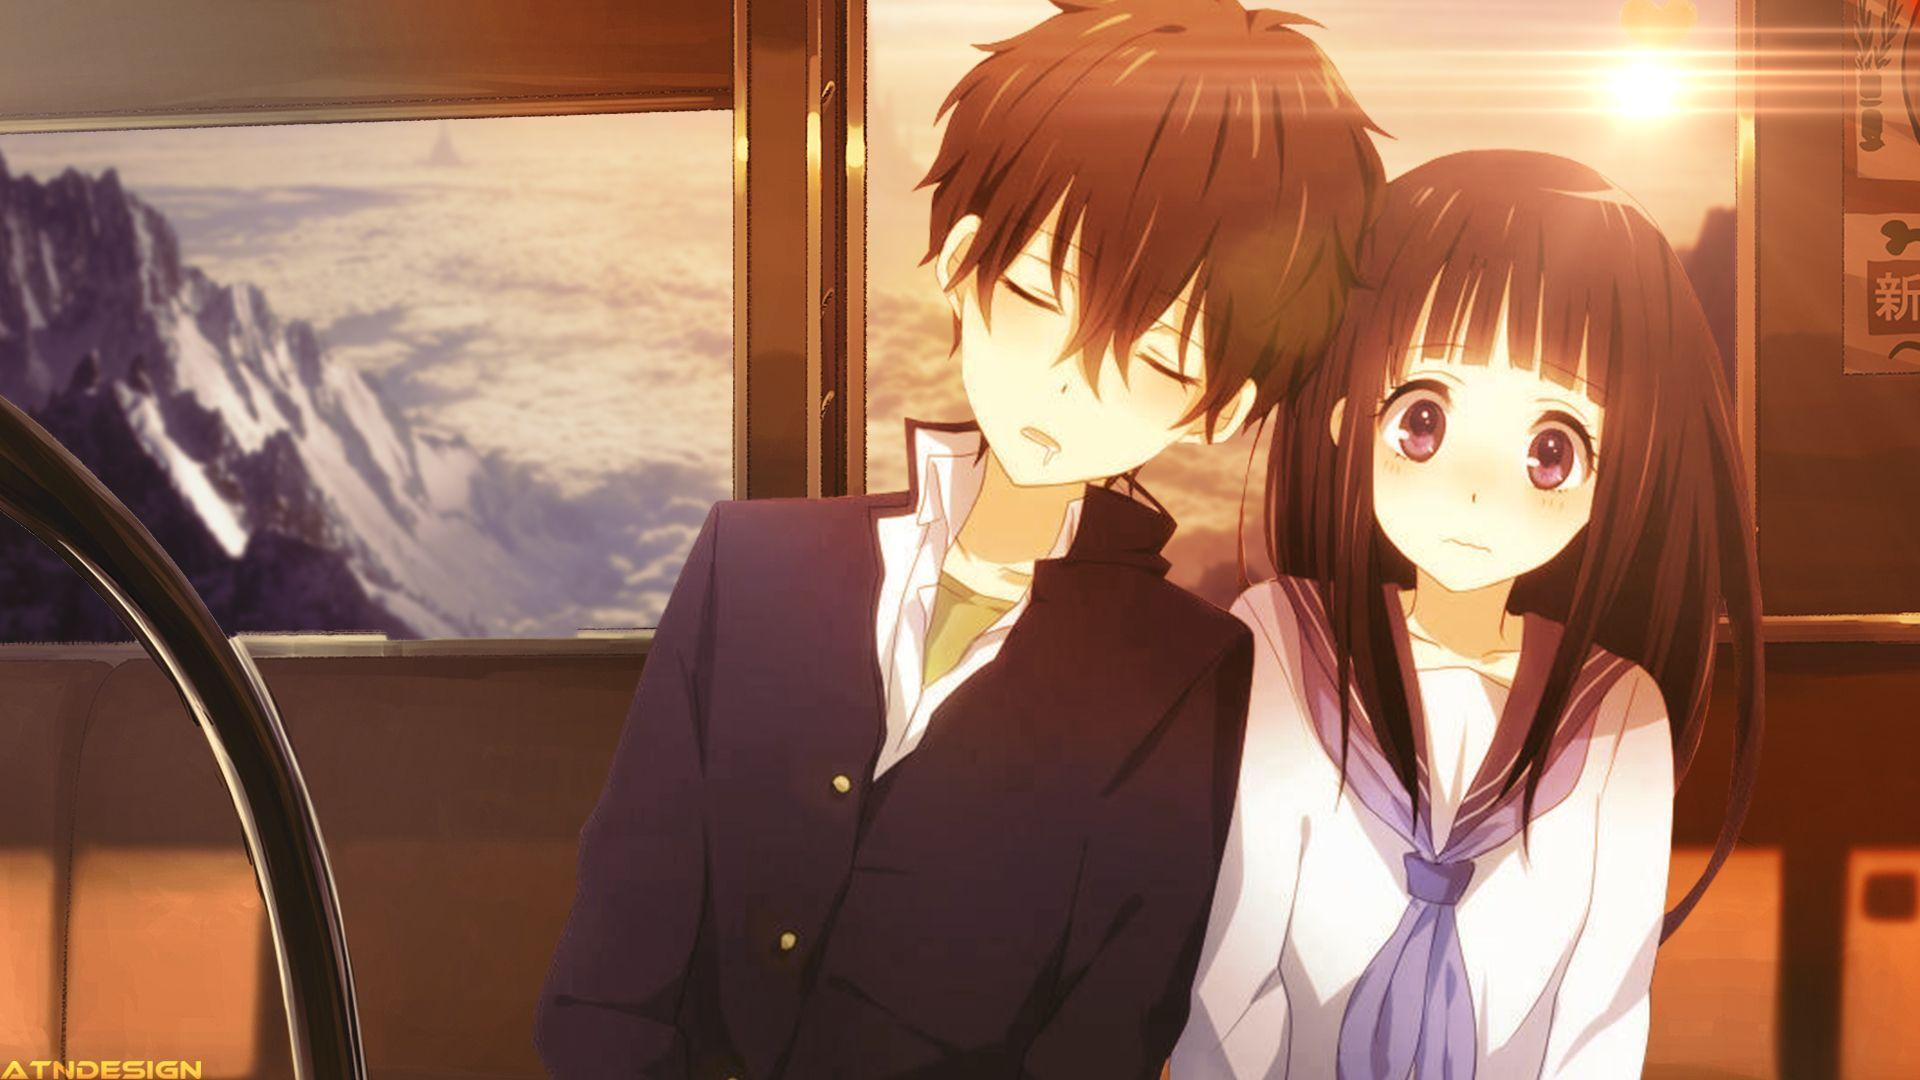 Cute Anime Couples Wallpapers Top Free Cute Anime Couples